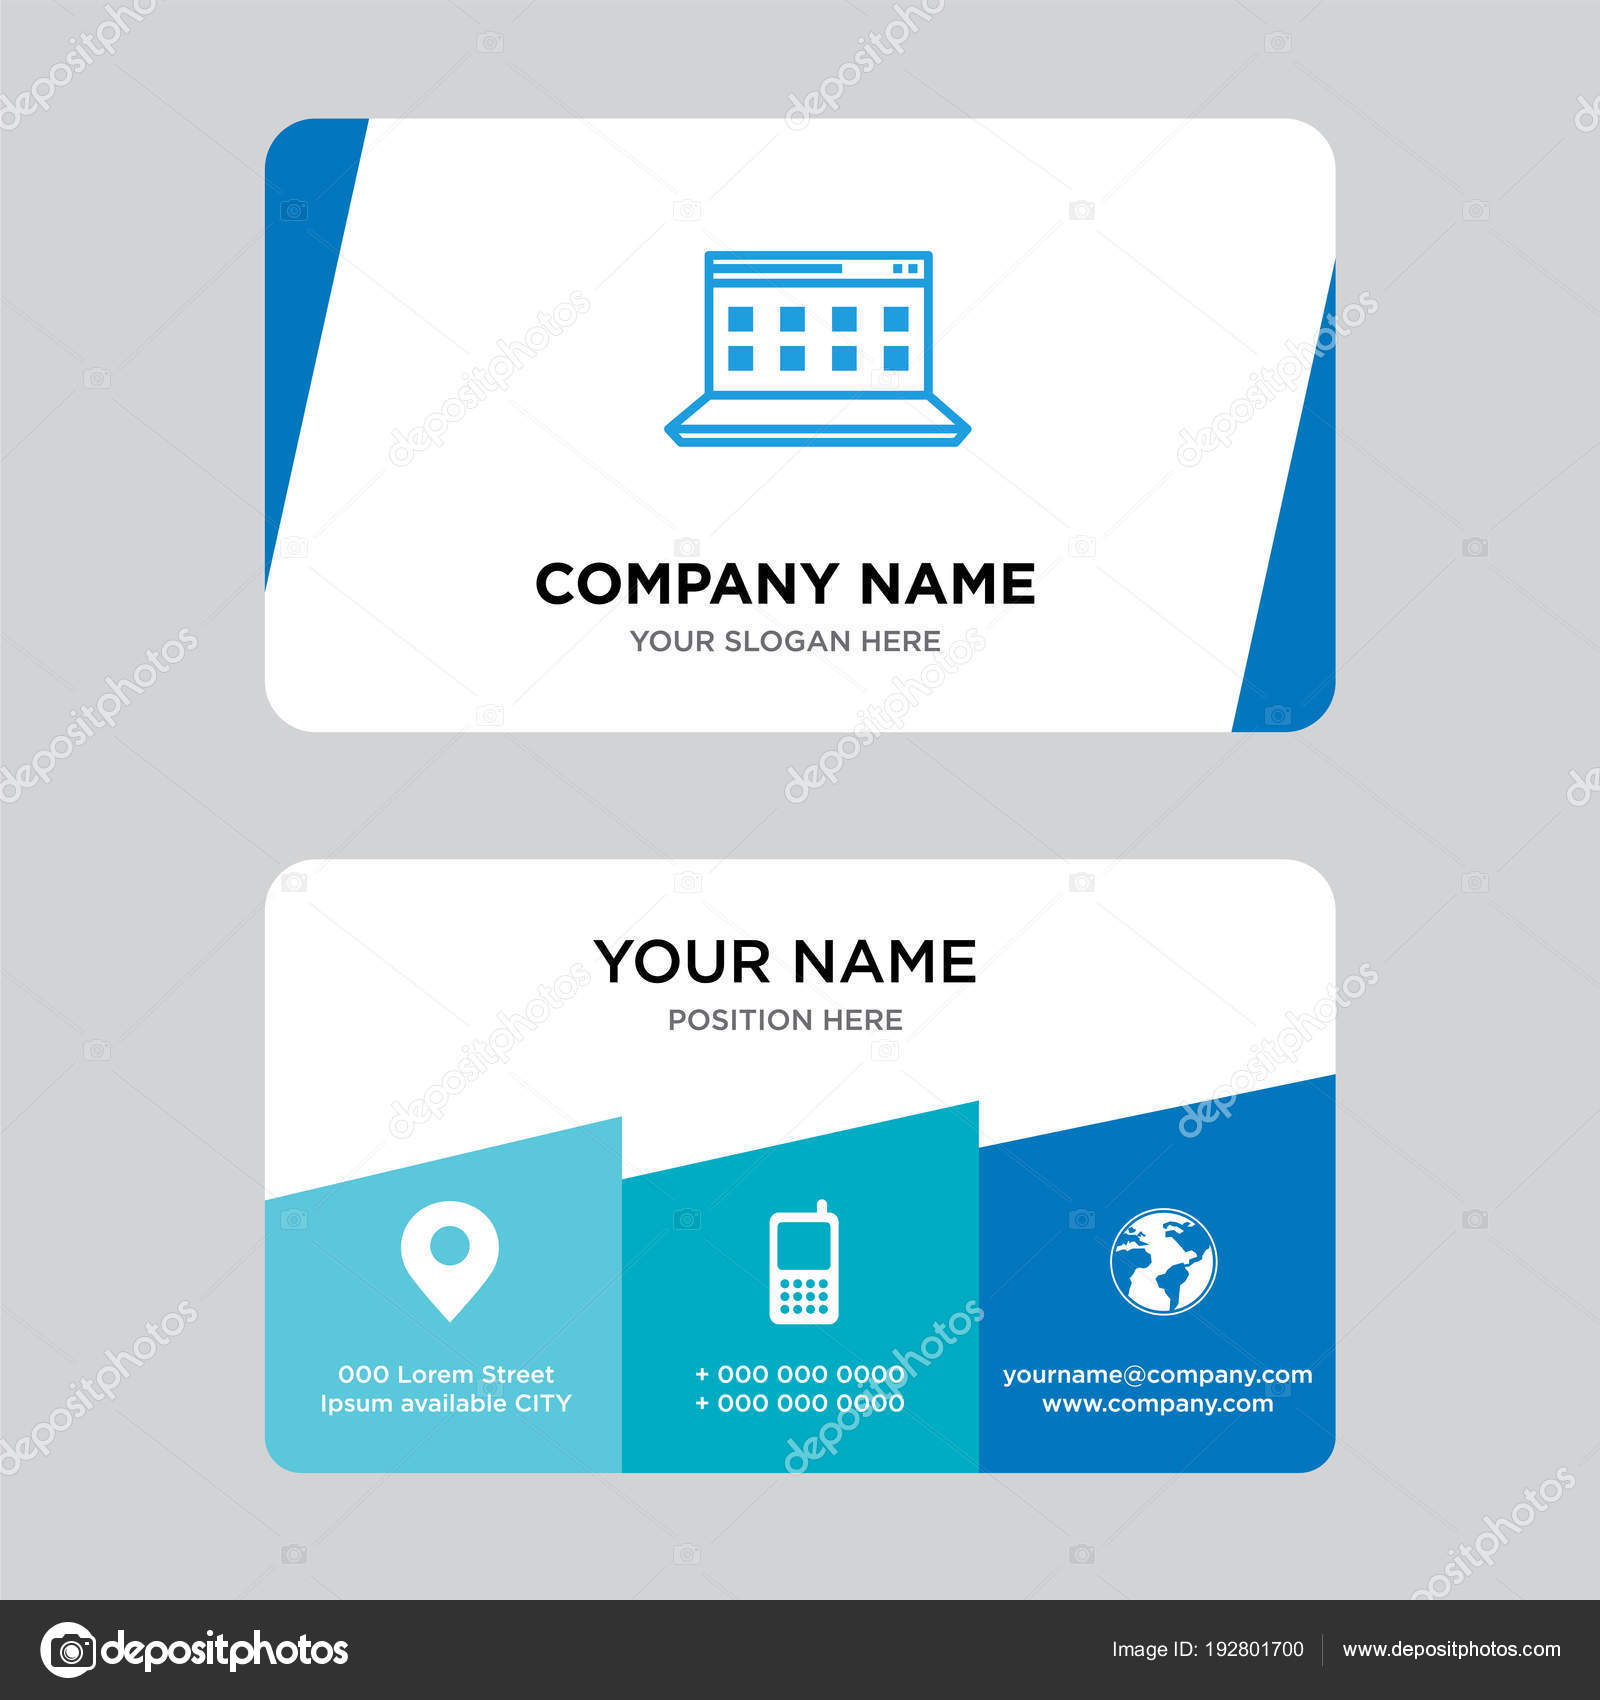 Computer business card design template stock vector computer business card design template stock vector wajeb Gallery